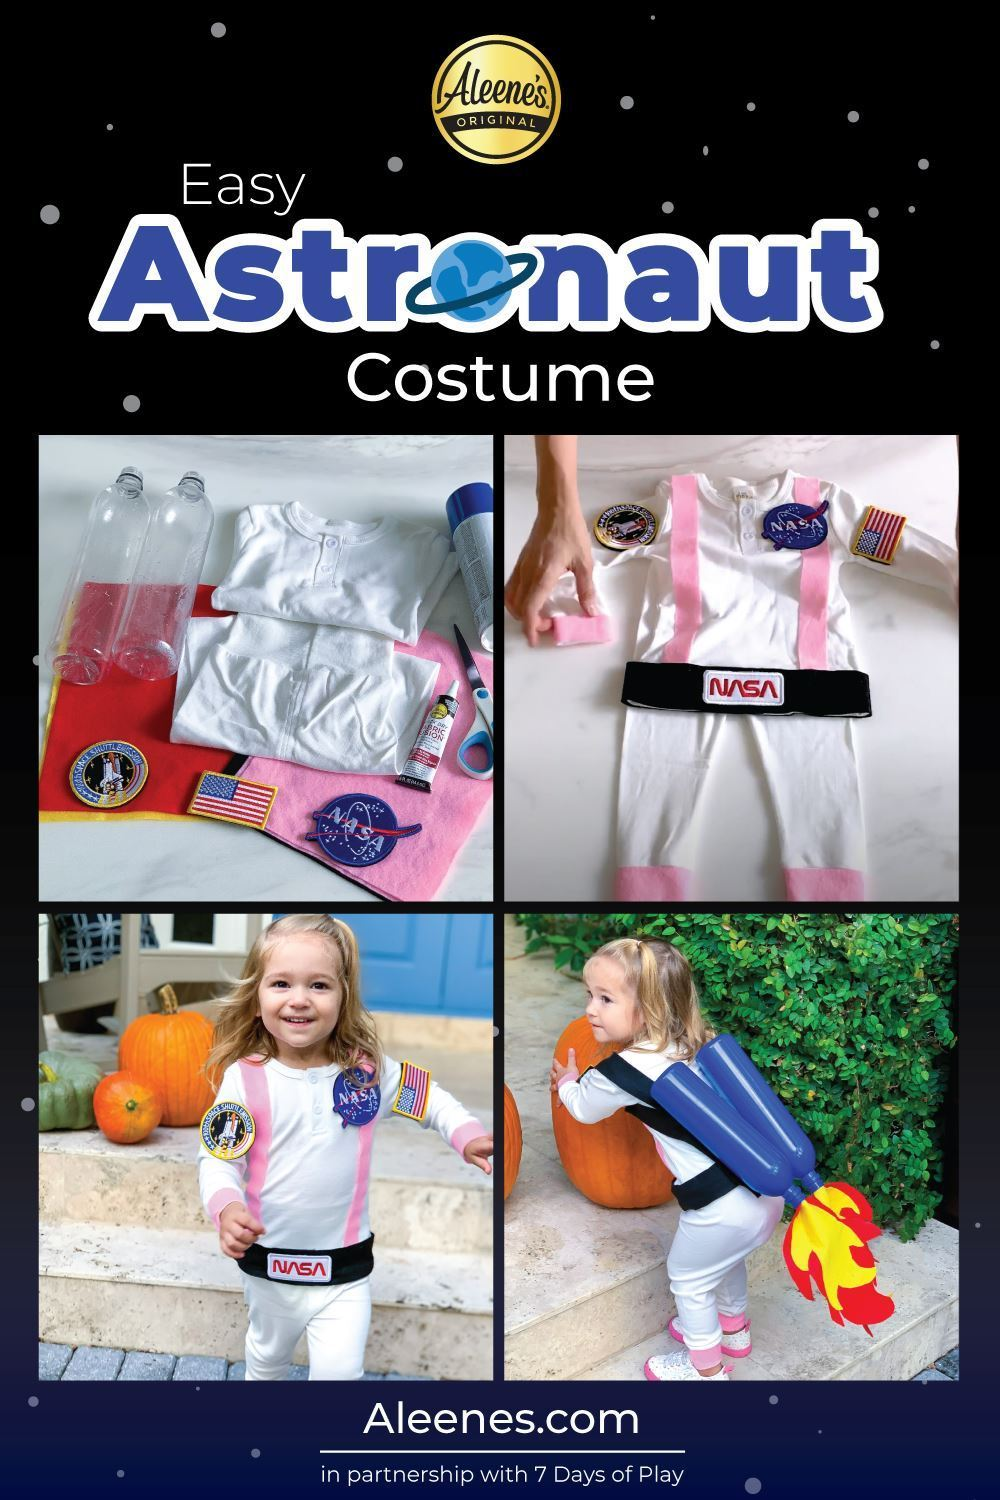 Easy Astronaut Costume